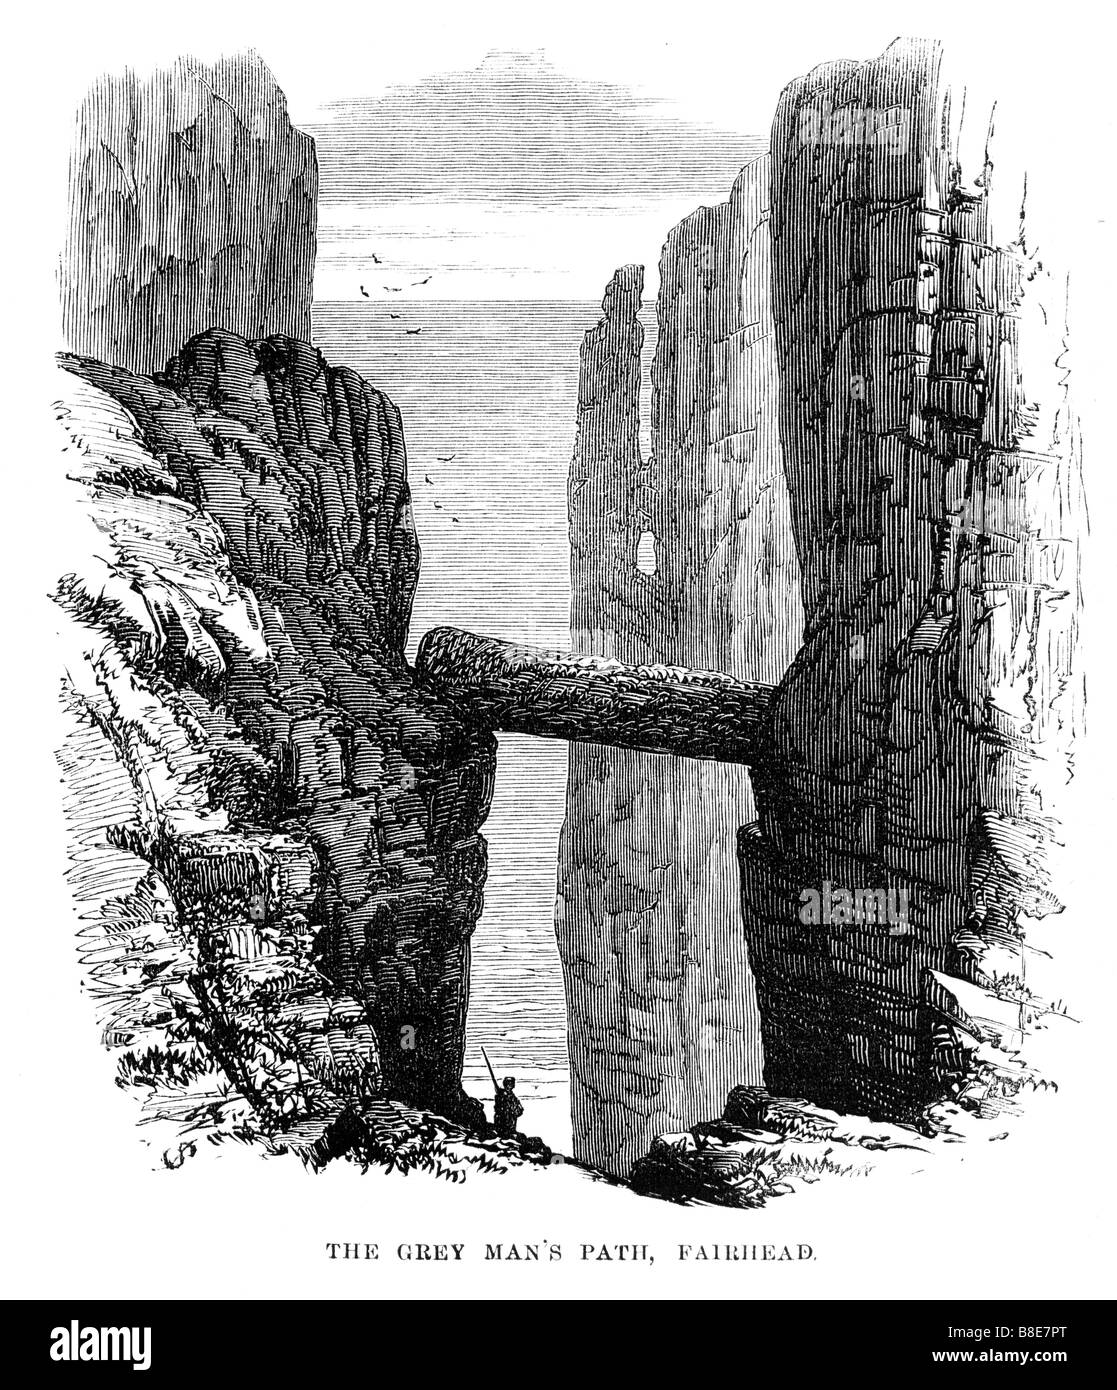 Grey Mans Path Fair Head 1874 engraving of the cliffs on the North coast of Ireland - Stock Image